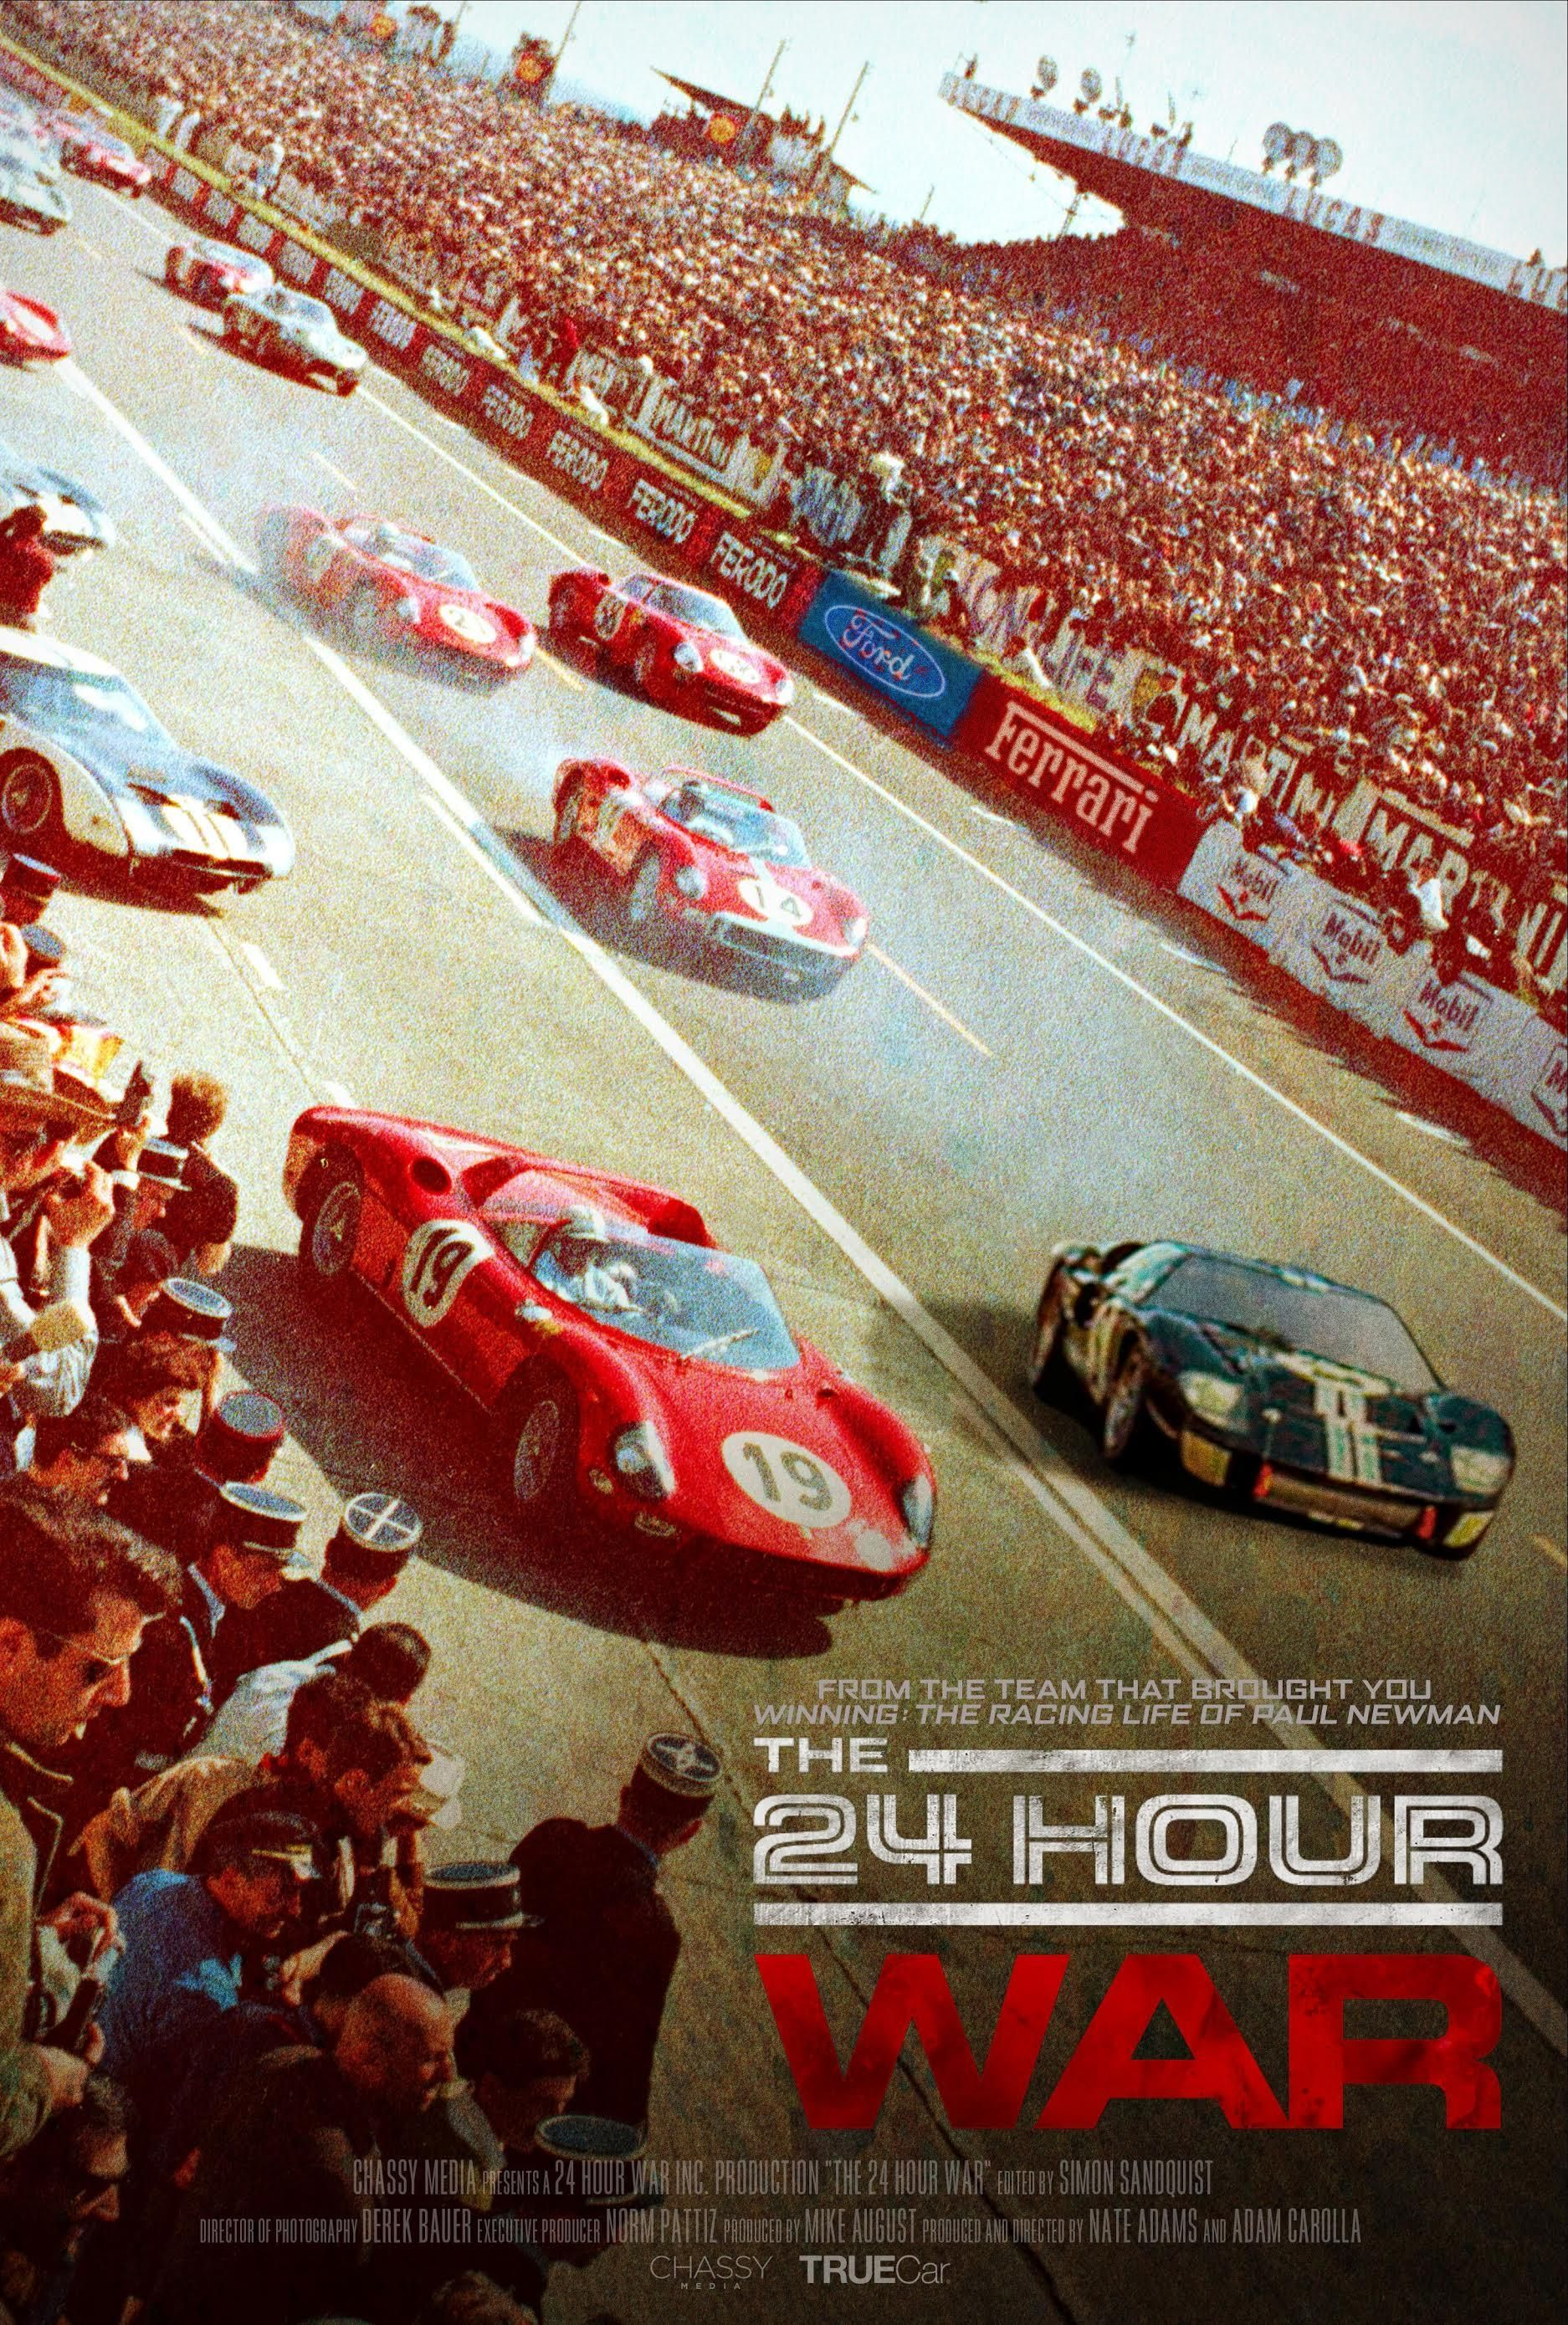 Adam Carolla On The 24 Hour War His Le Mans Rivalry Documentary